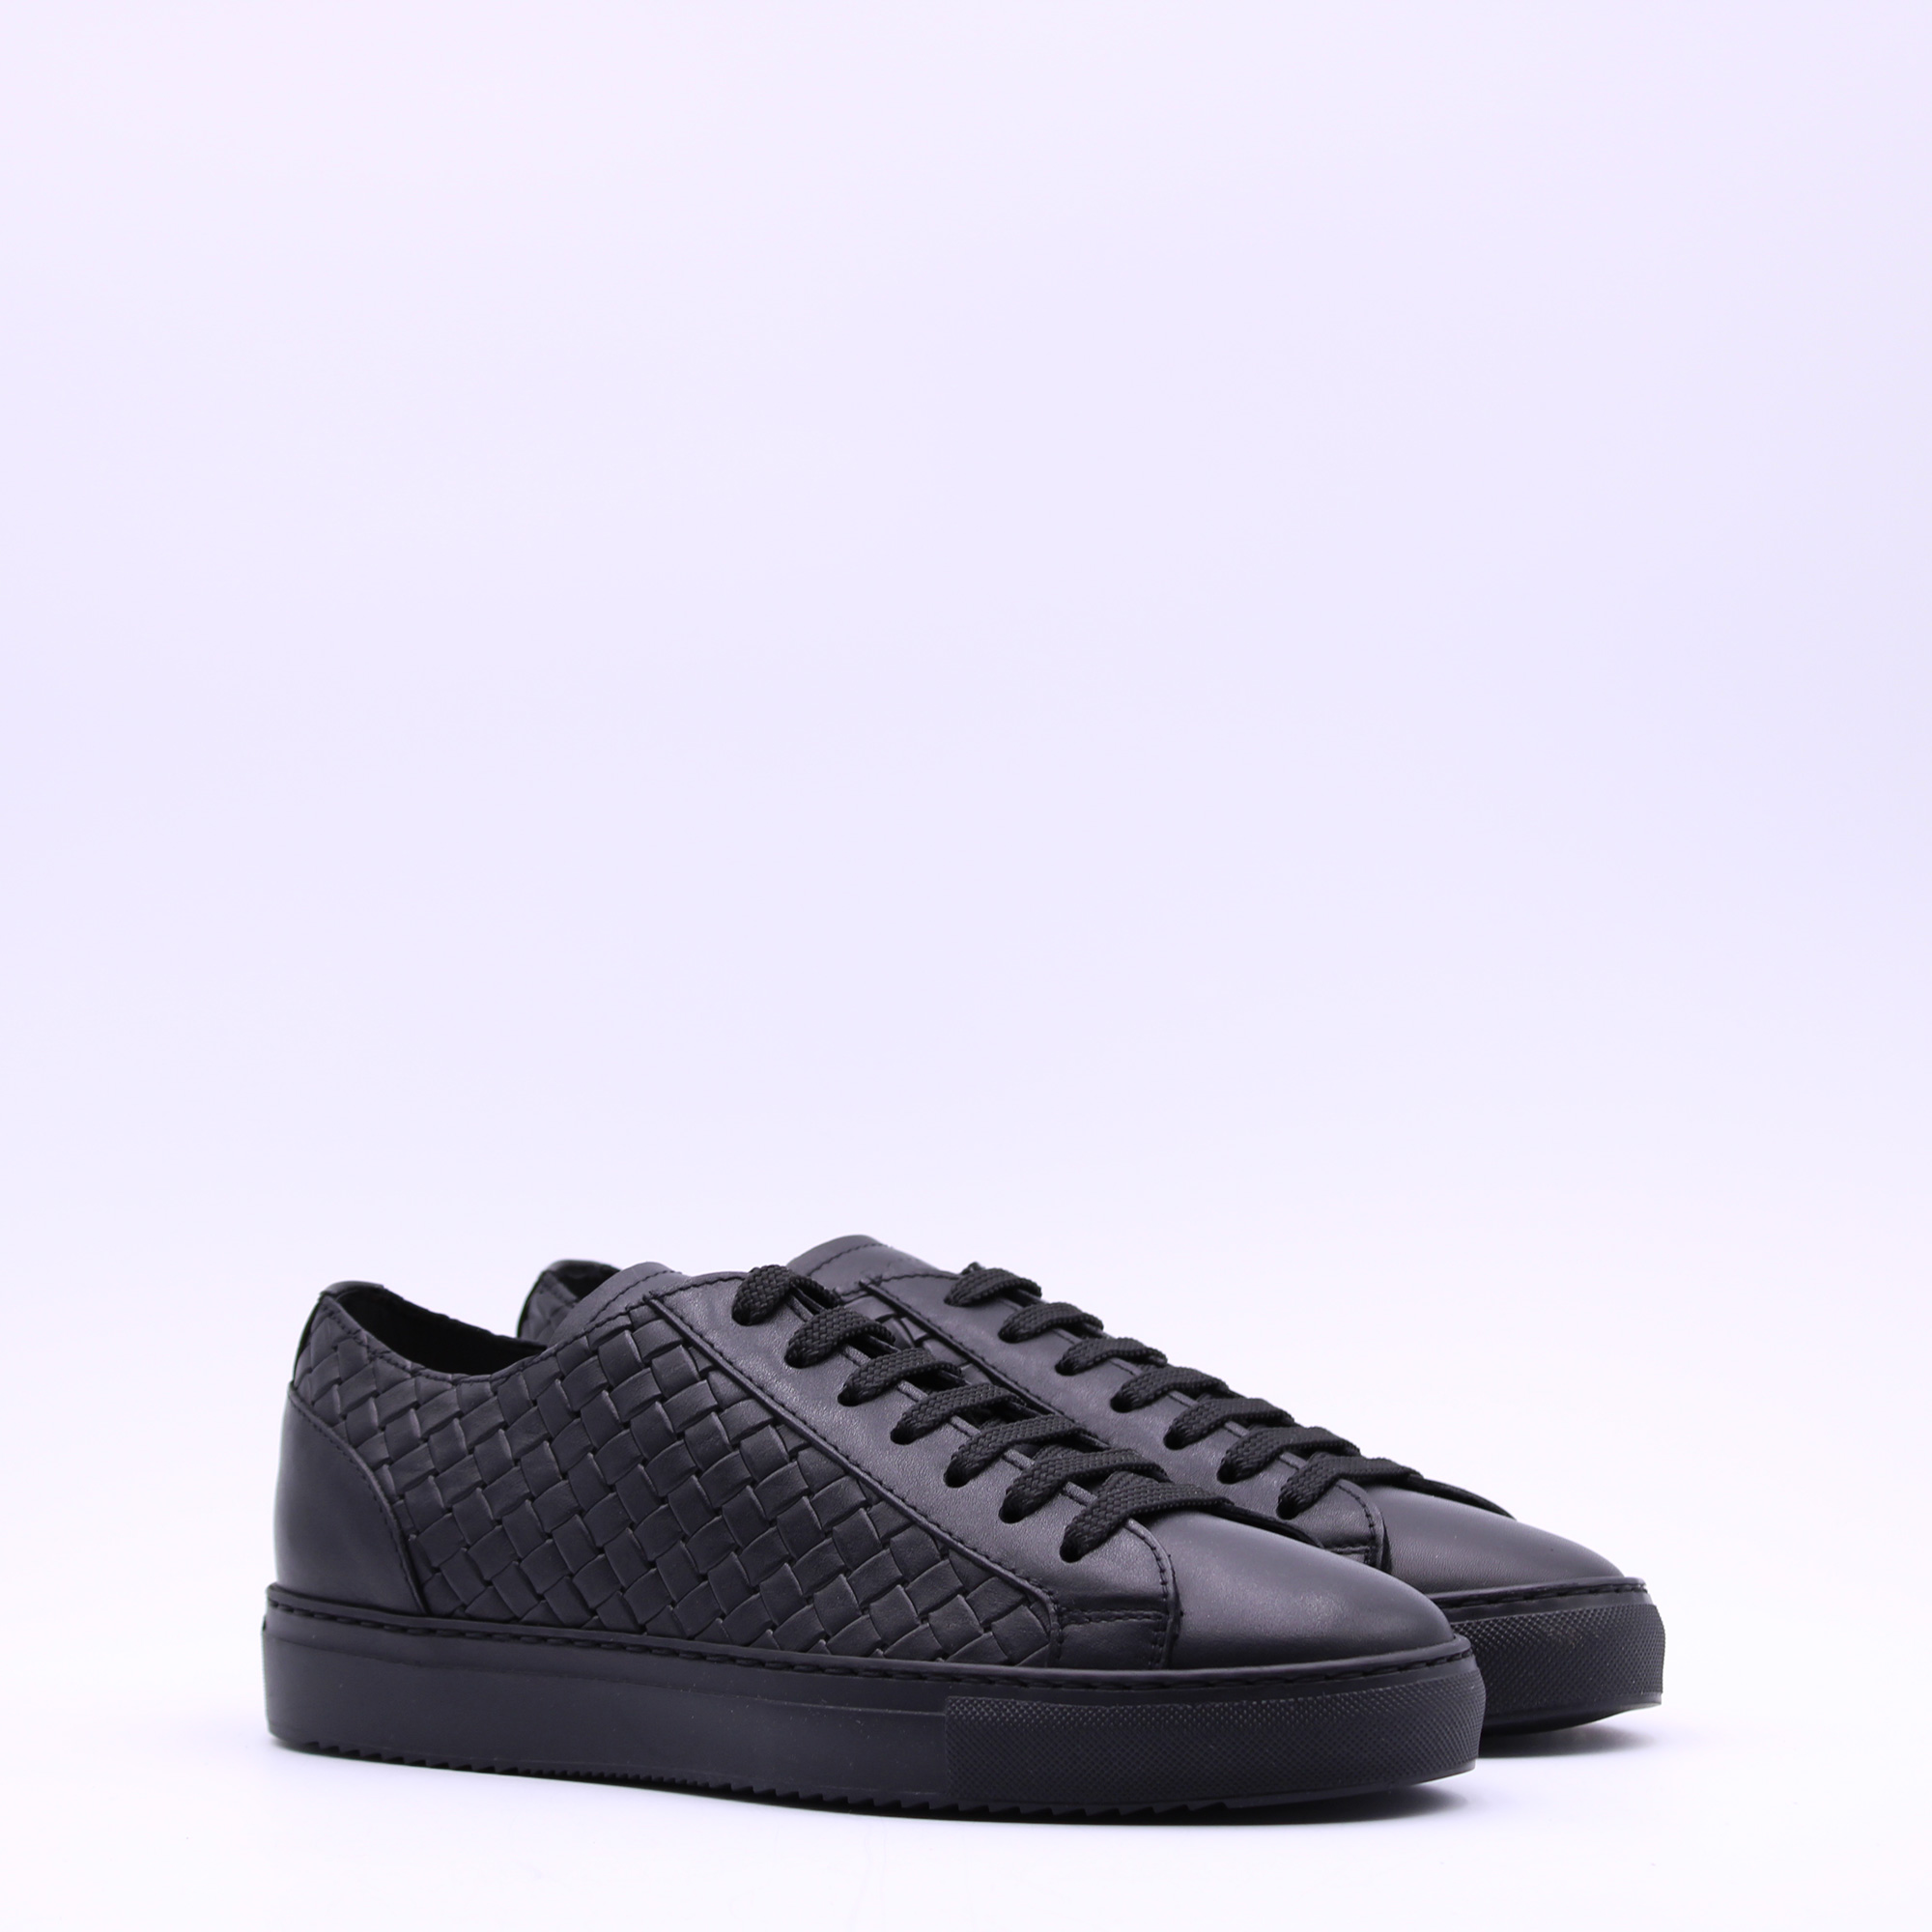 Sneakers gm plume - Nero